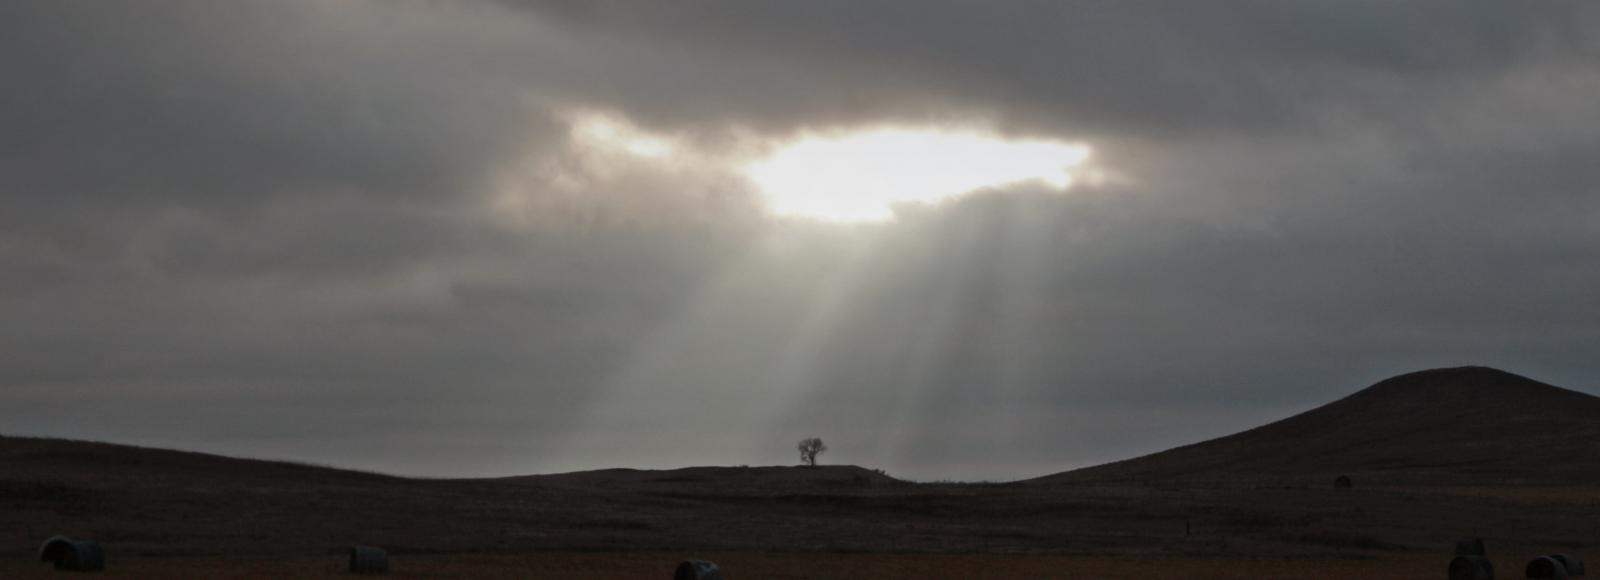 sunshine breaks through the clouds and alights one tree on the great plains